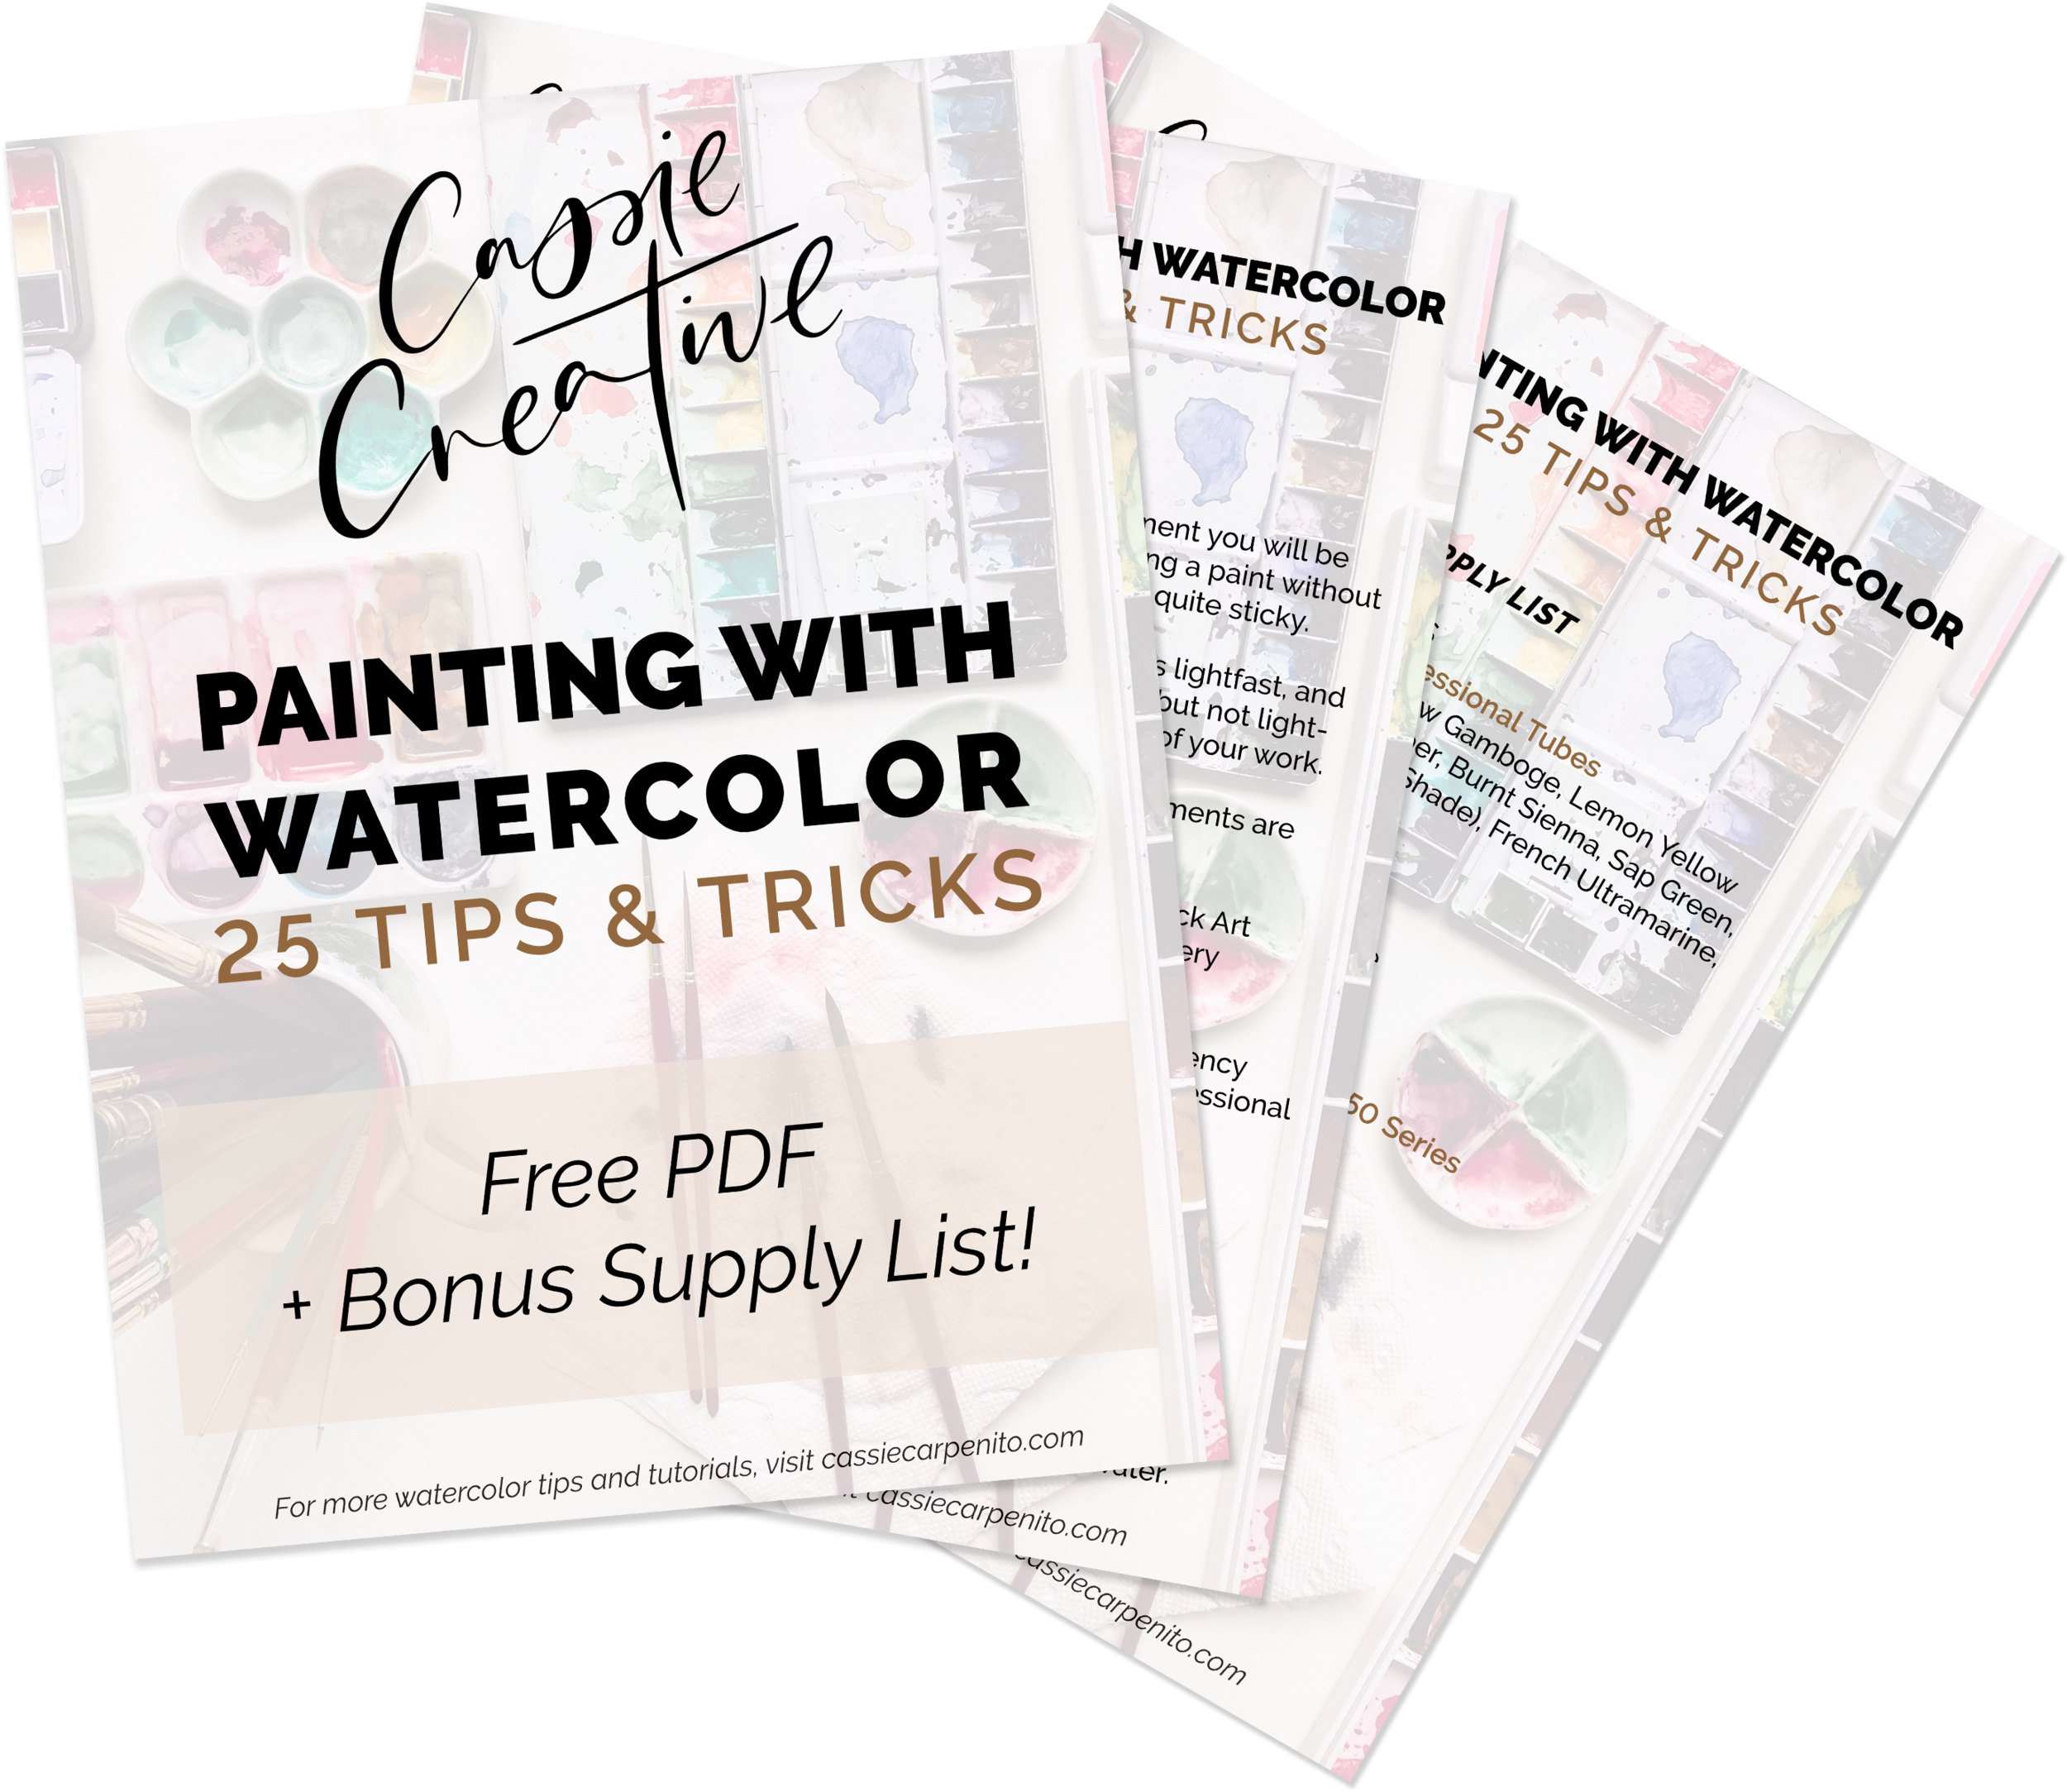 Watercolor_Tips_and_Tricks.png